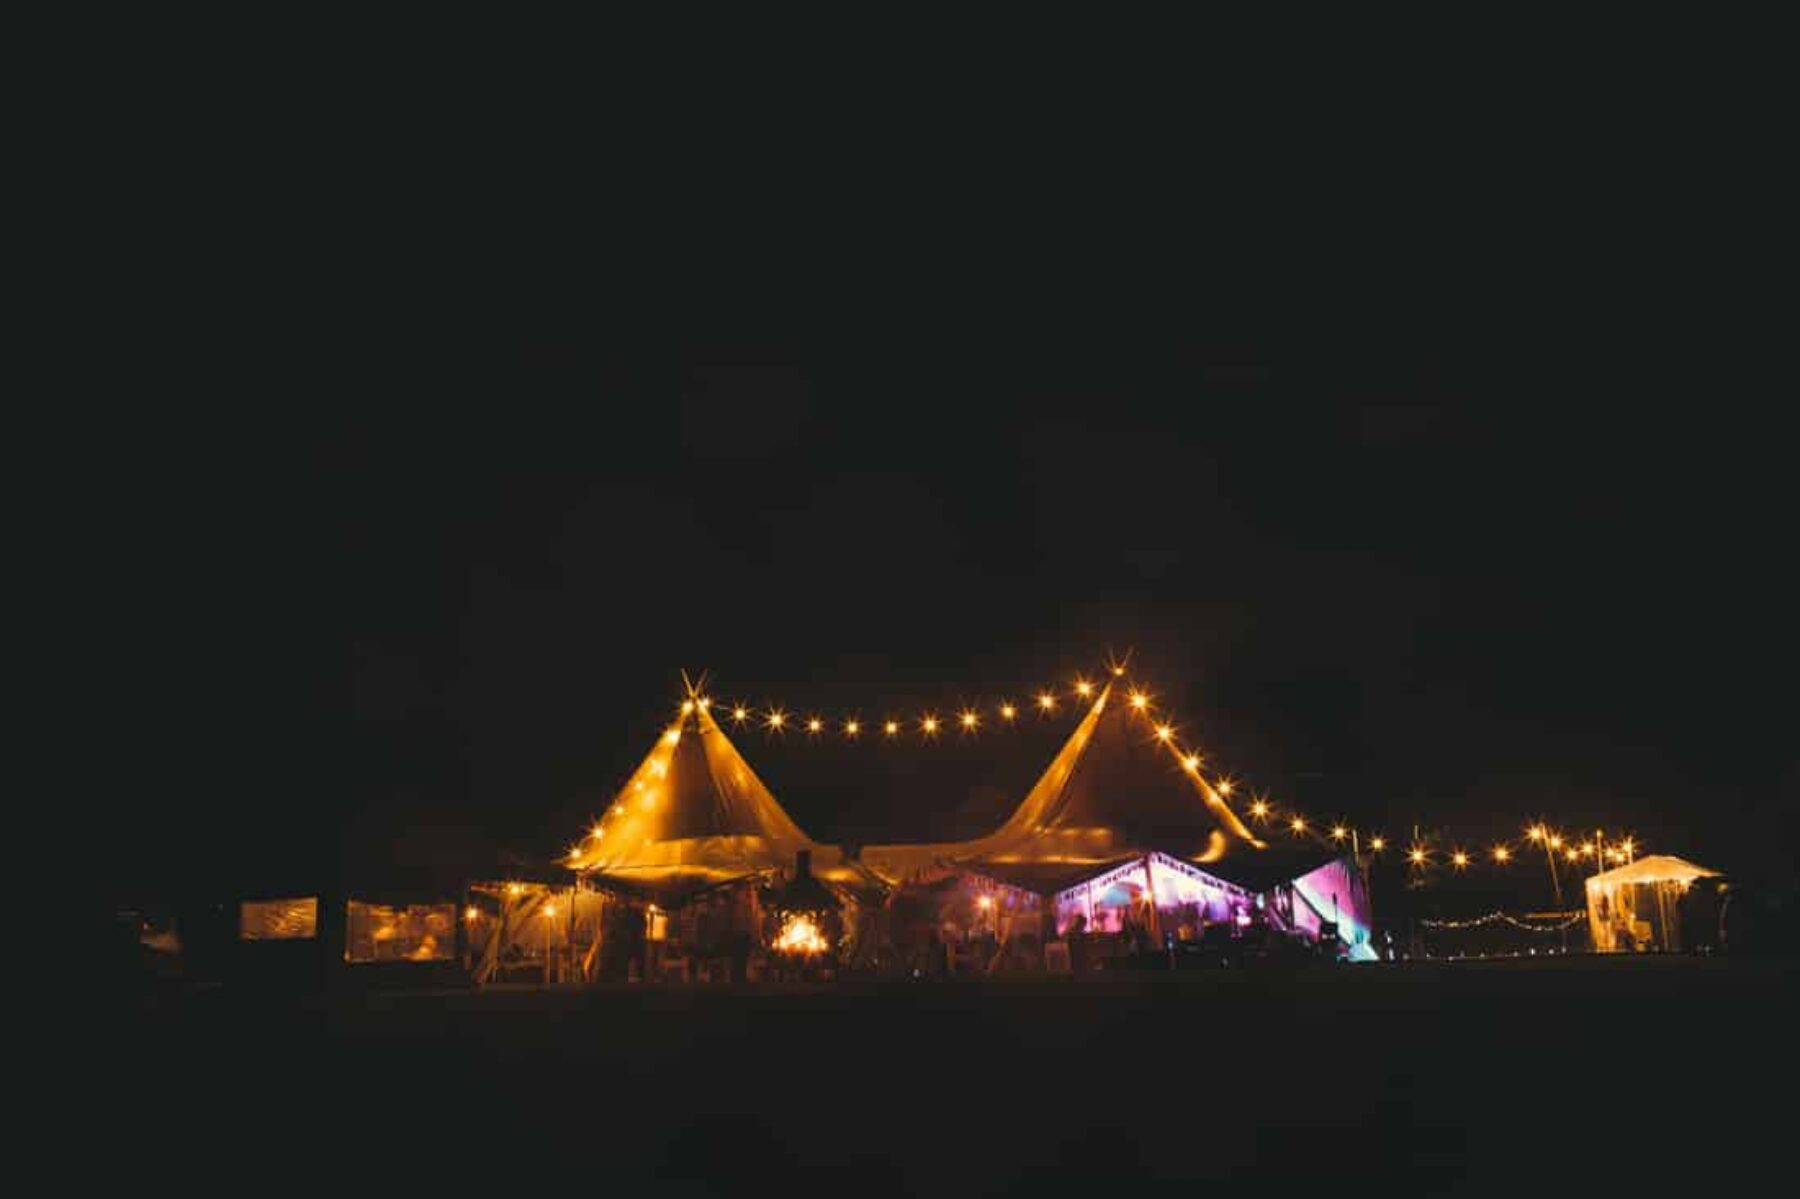 boho festival tipi wedding